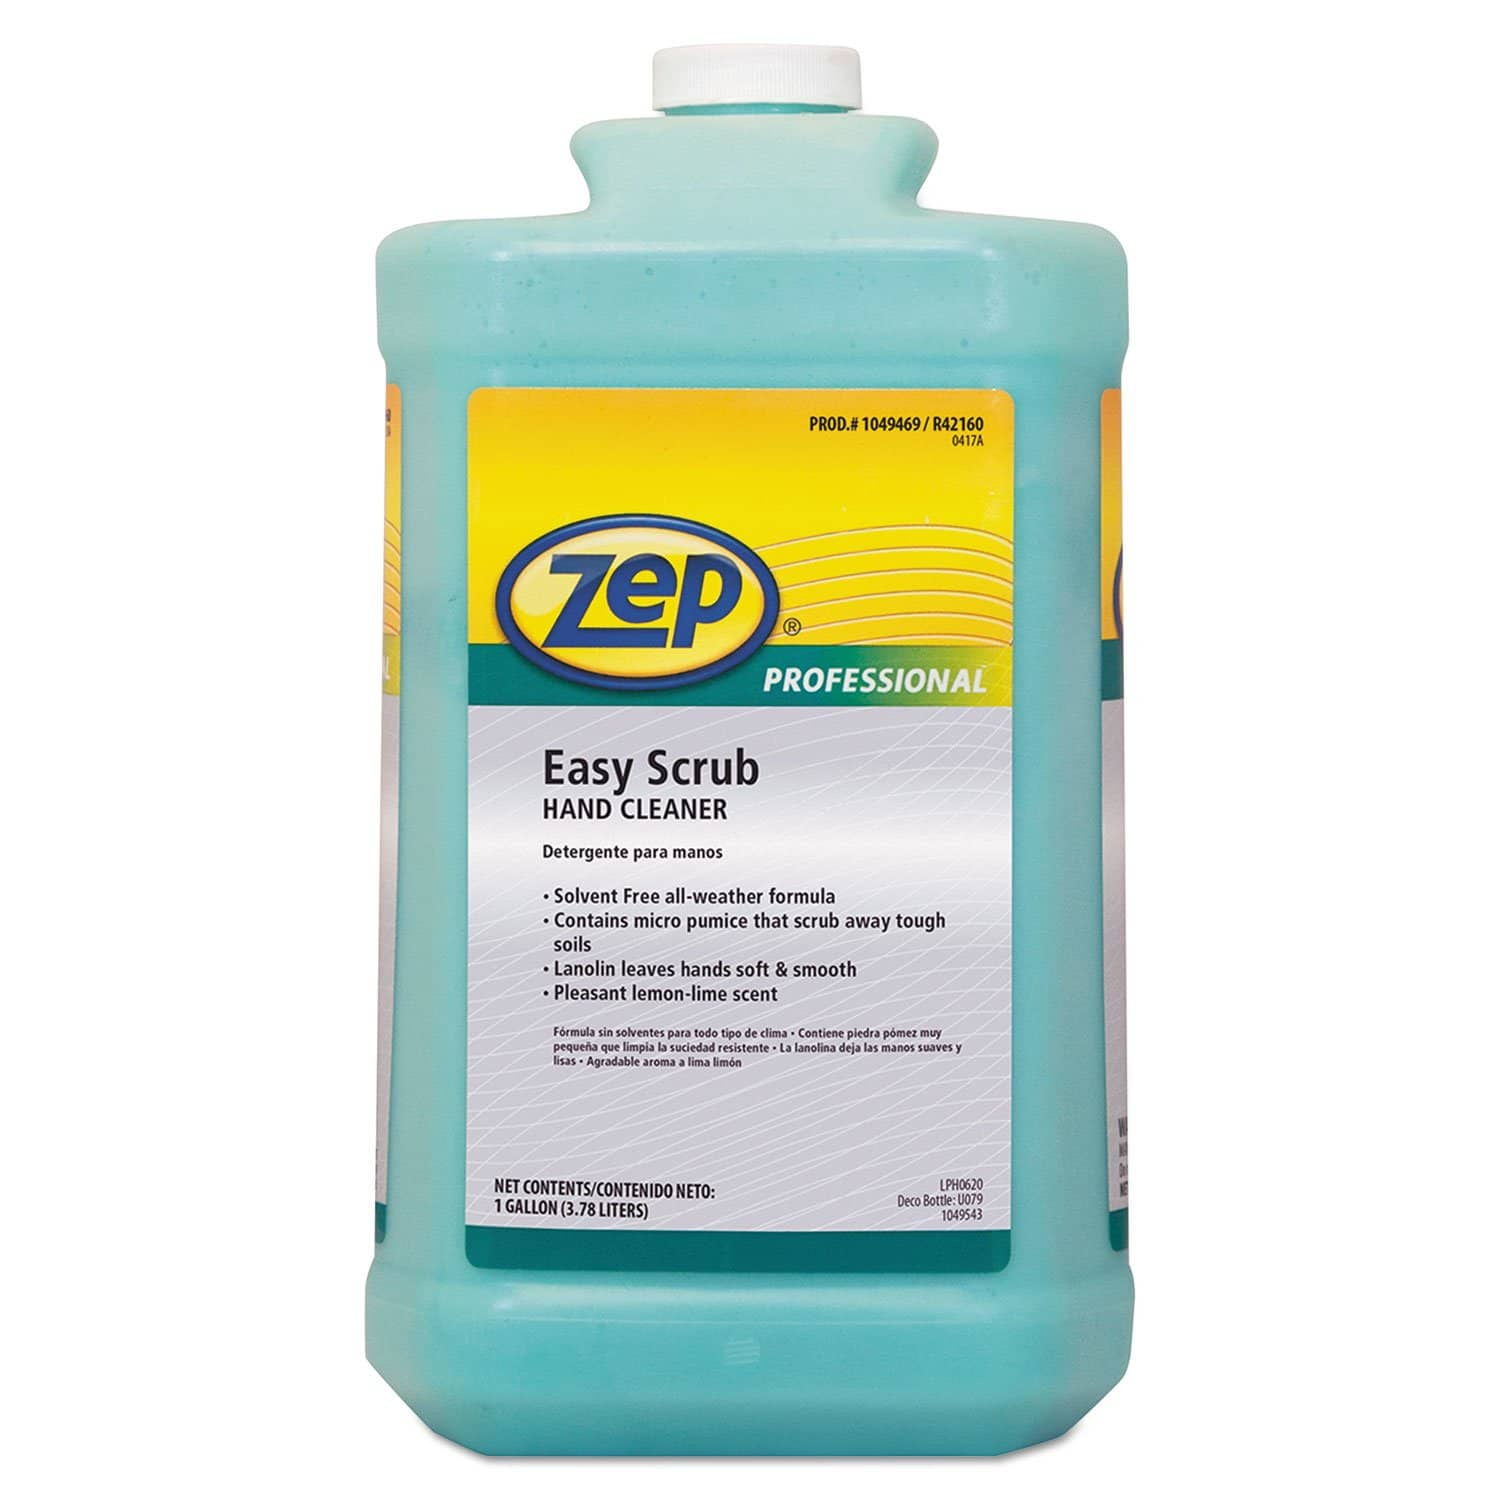 Zep Industrial Hand Cleaner, Easy Scrub, 1 Gal Bottle, 4/Carton - ZPP1049469 - TotalRestroom.com